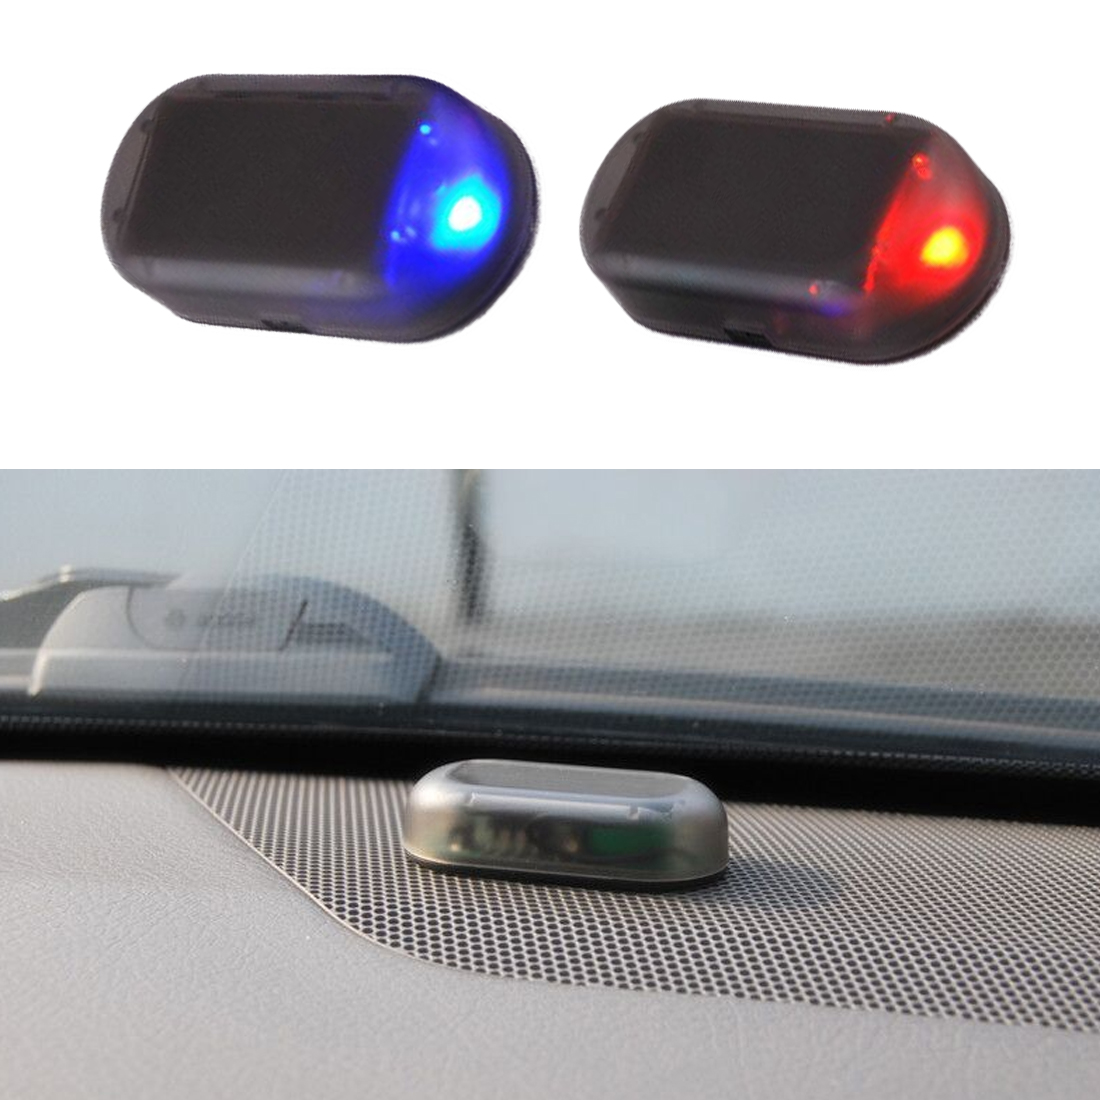 цена на 1PCS Universal Car Led Light Security System Warning Theft Flash Blinking Fake Solar Car Alarm LED Light